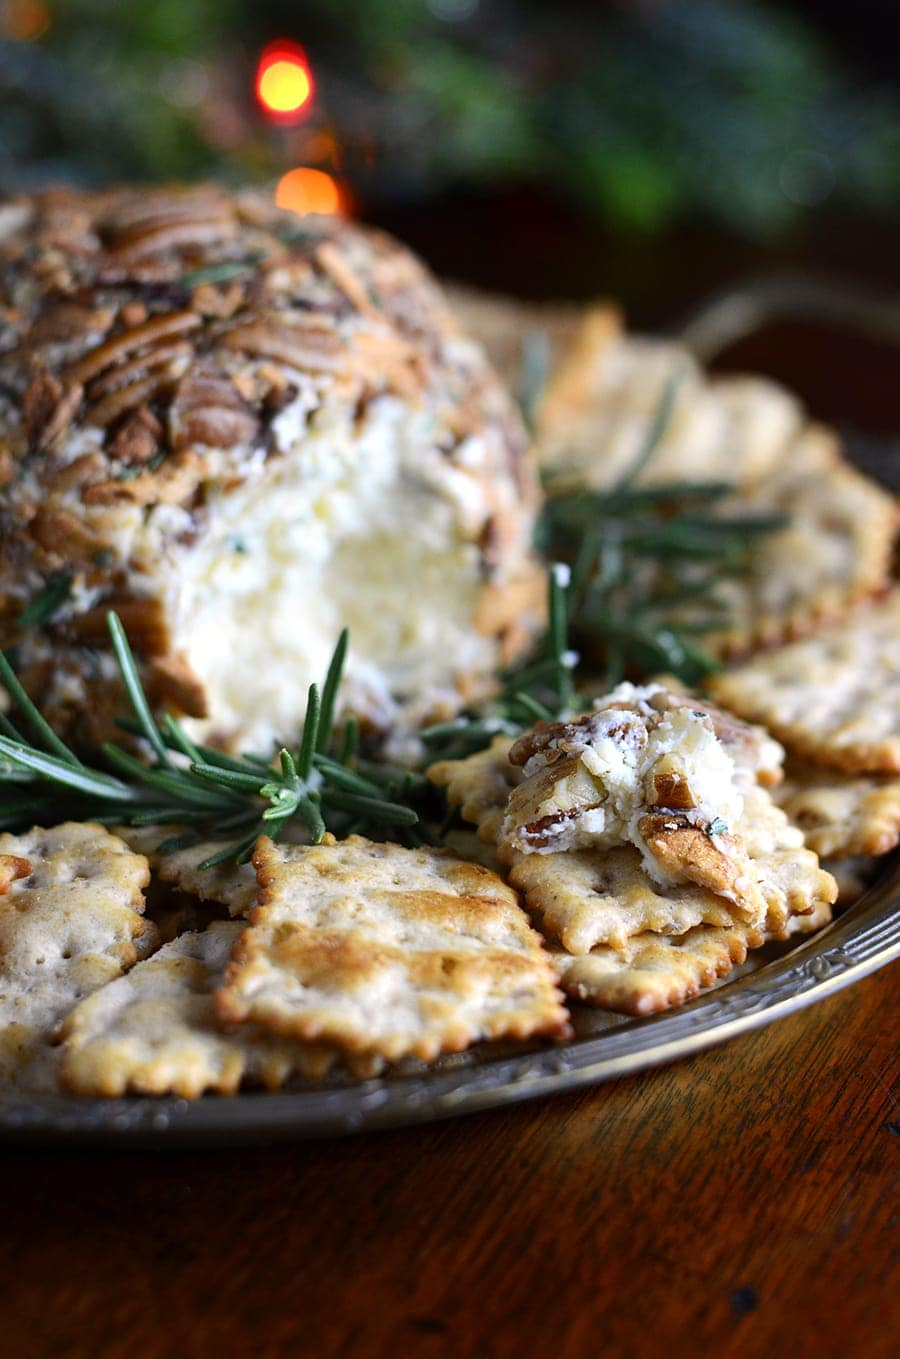 This sharp and creamy Easy Cheddar Cheese Ball will be a party favorite this holiday season! Aged cheddar is combined with cream cheese and rolled in butter roasted apple chips and pecans with a sprinkle of fresh rosemary. Just 7 ingredients for this no fuss, delicious recipe.